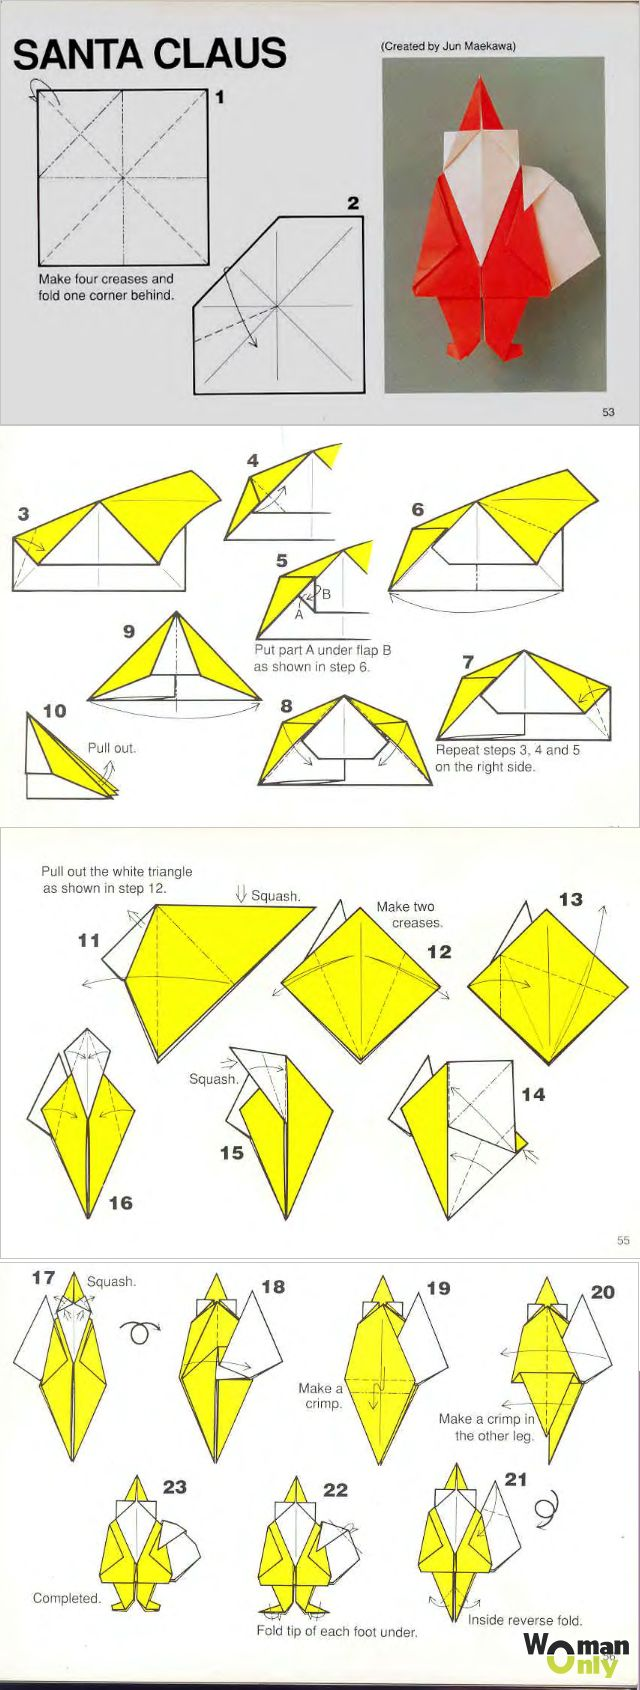 44 Best Mikul Images On Pinterest Advent Christmas Time And Craft Origami Diagrams Nativity Diy Cards Tree Paper Oragami Art